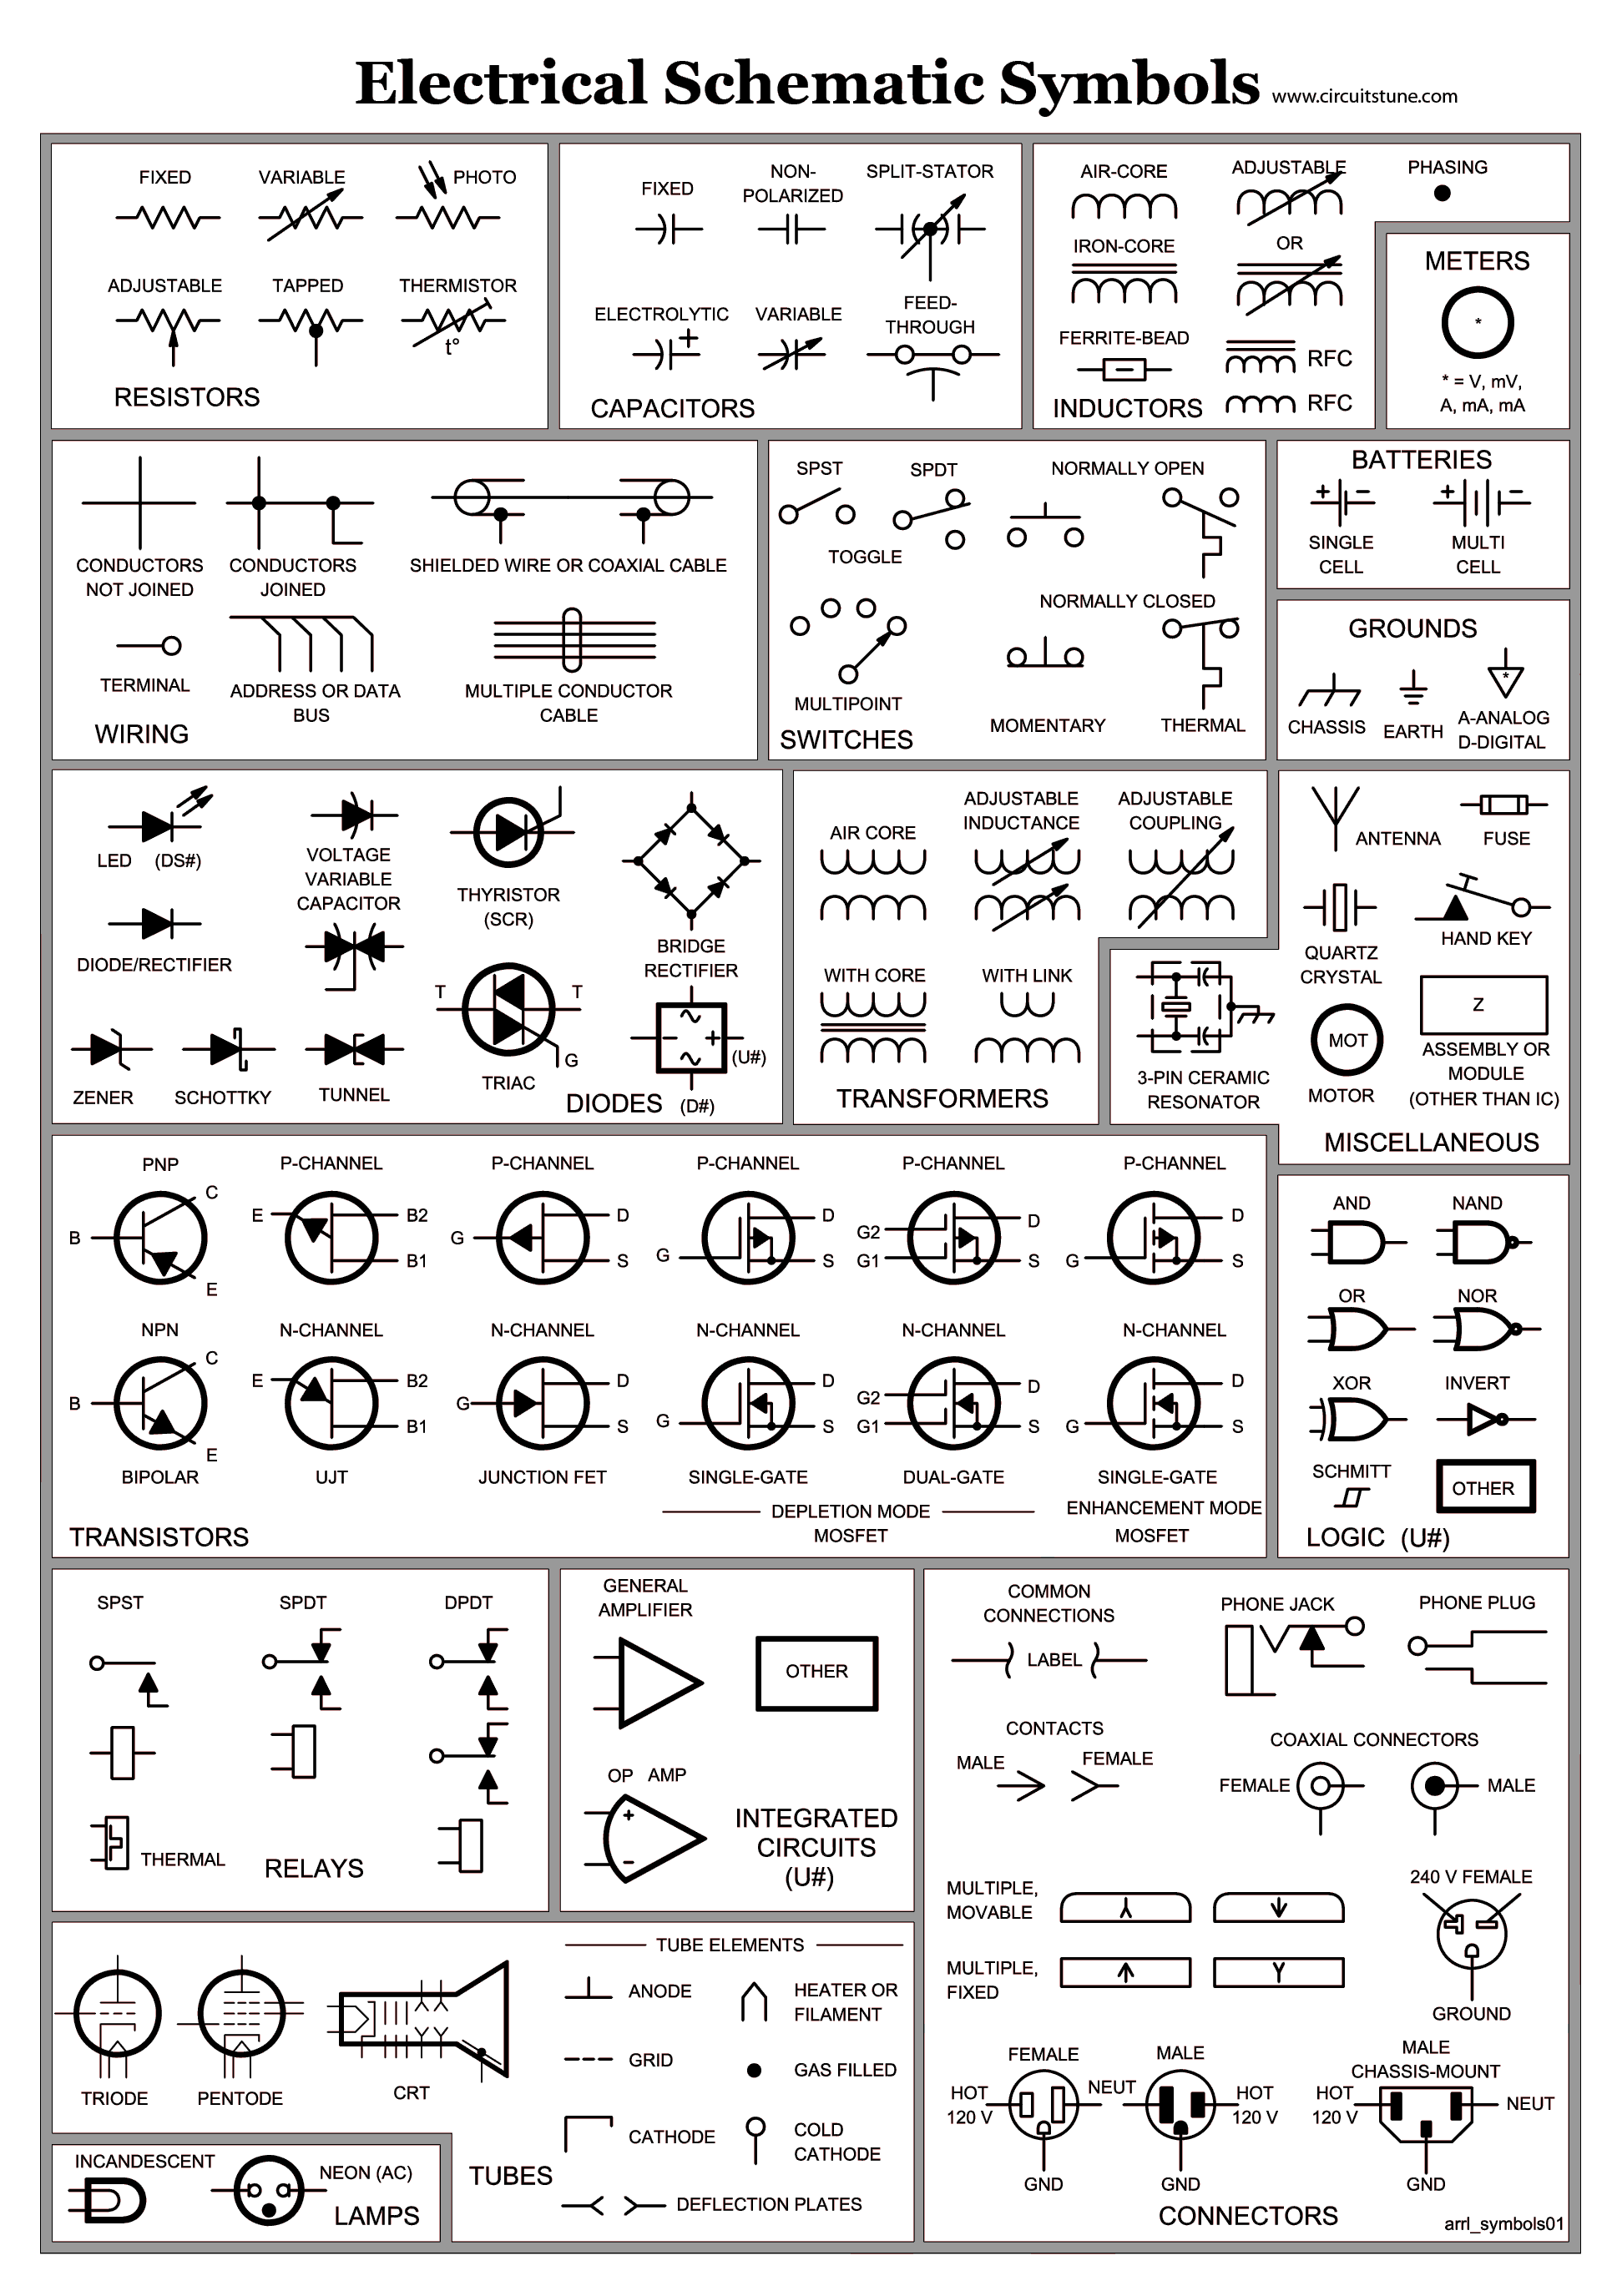 a65d176364692d2ebe913b58a654cfc3 electrical schematic symbols wire diagram symbols automotive symbols used in electrical wiring diagrams at bakdesigns.co